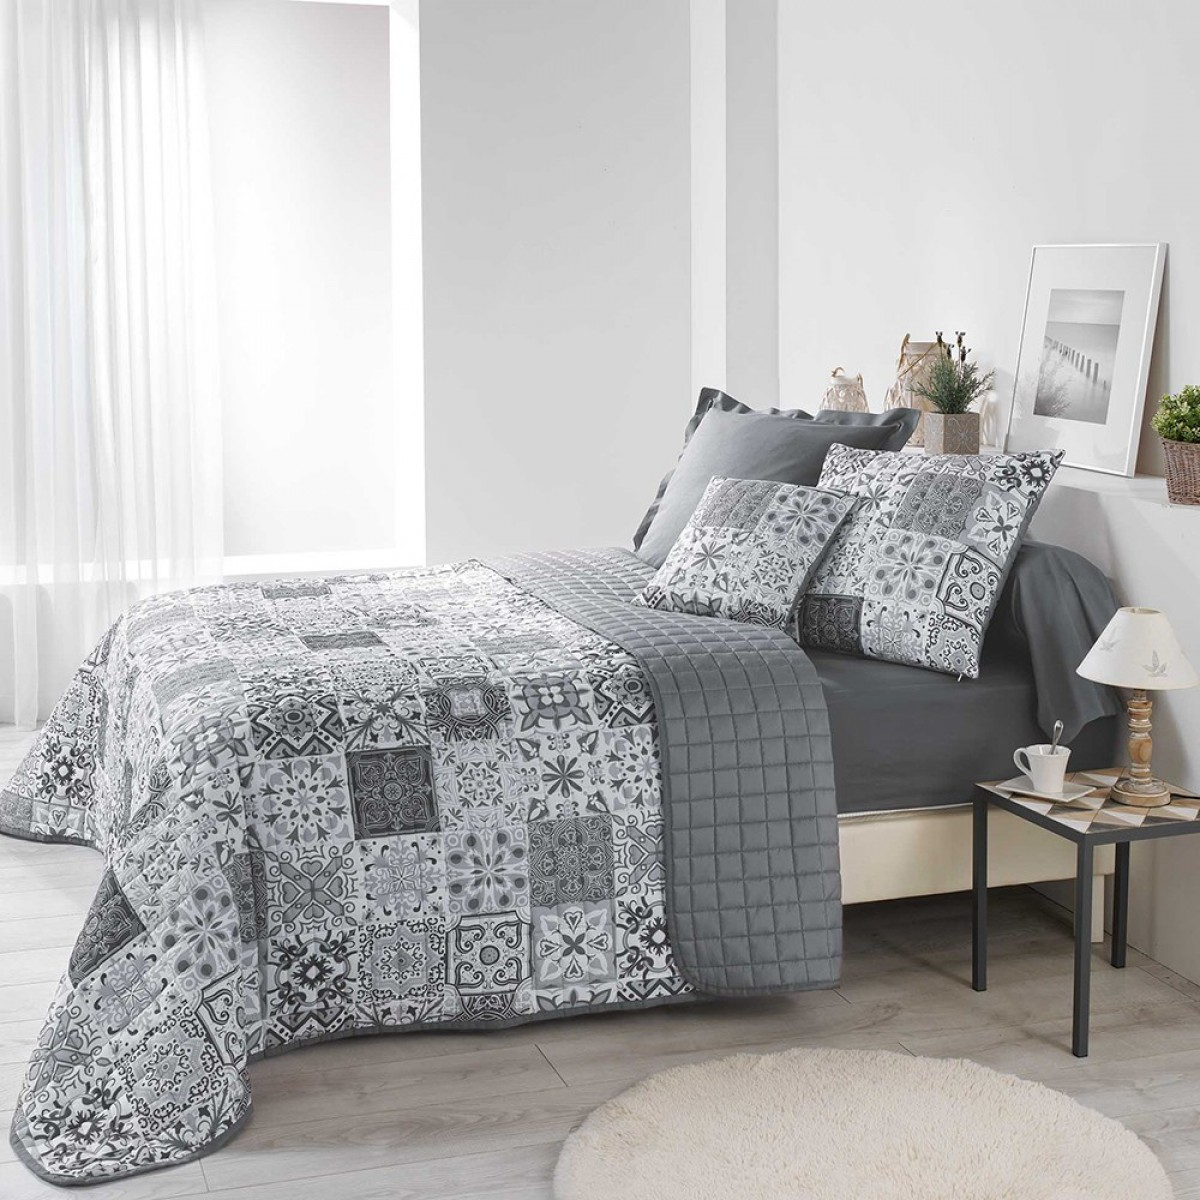 couvre lit 2 personnes matelass 220x240 microfibre persane gris les douces nuits de ma. Black Bedroom Furniture Sets. Home Design Ideas